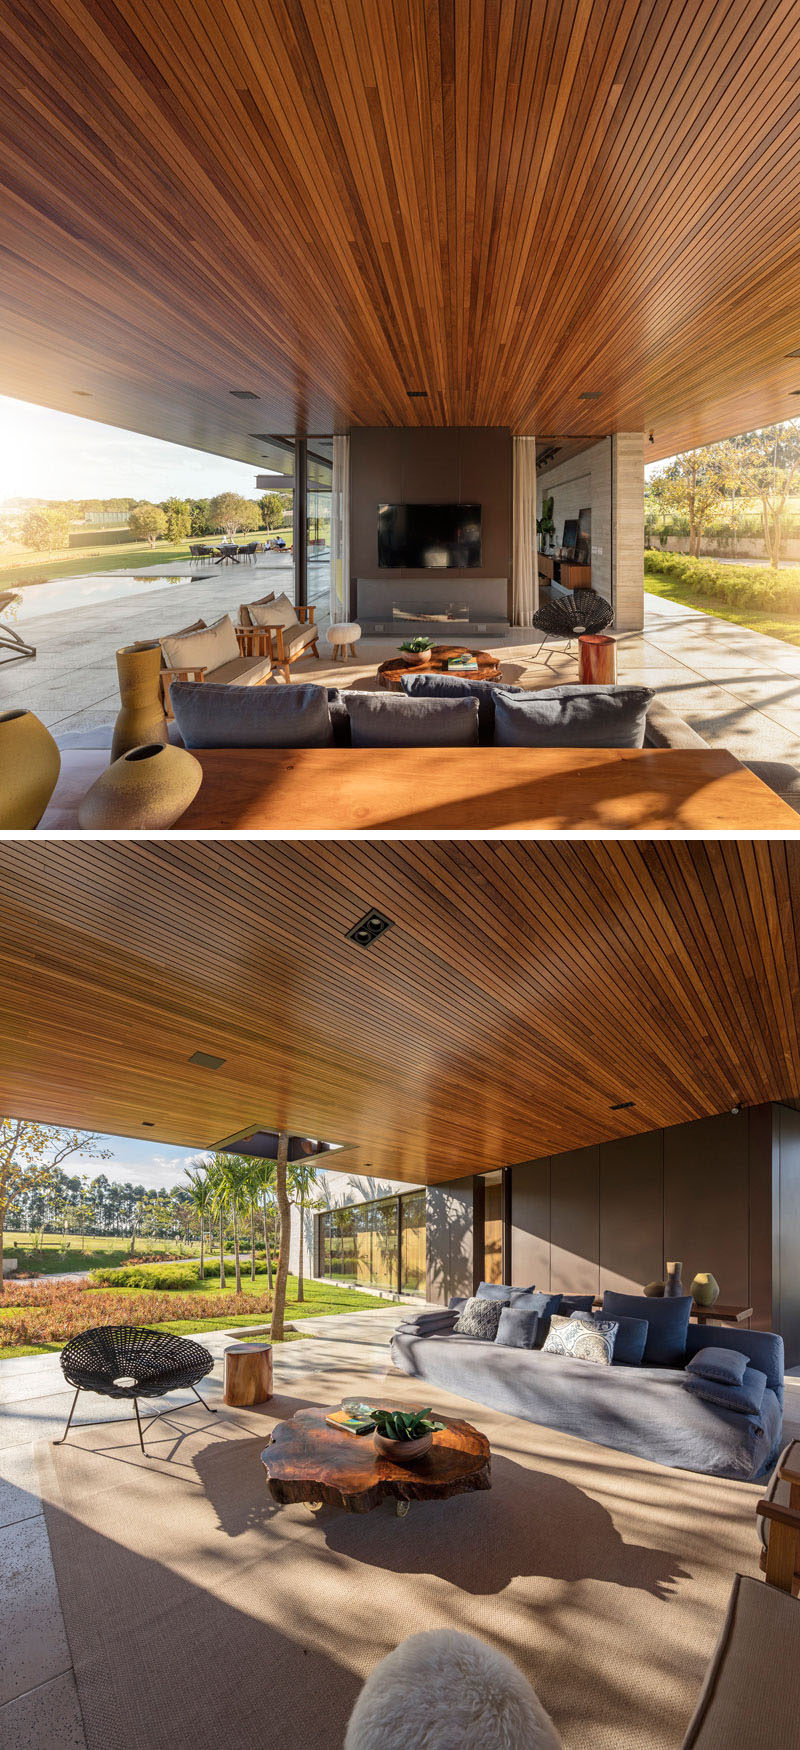 Next to the swimming pool in this Brazilian home is an outdoor lounge area, with television and fireplace, and a wooden ceiling that travels the length of the house.